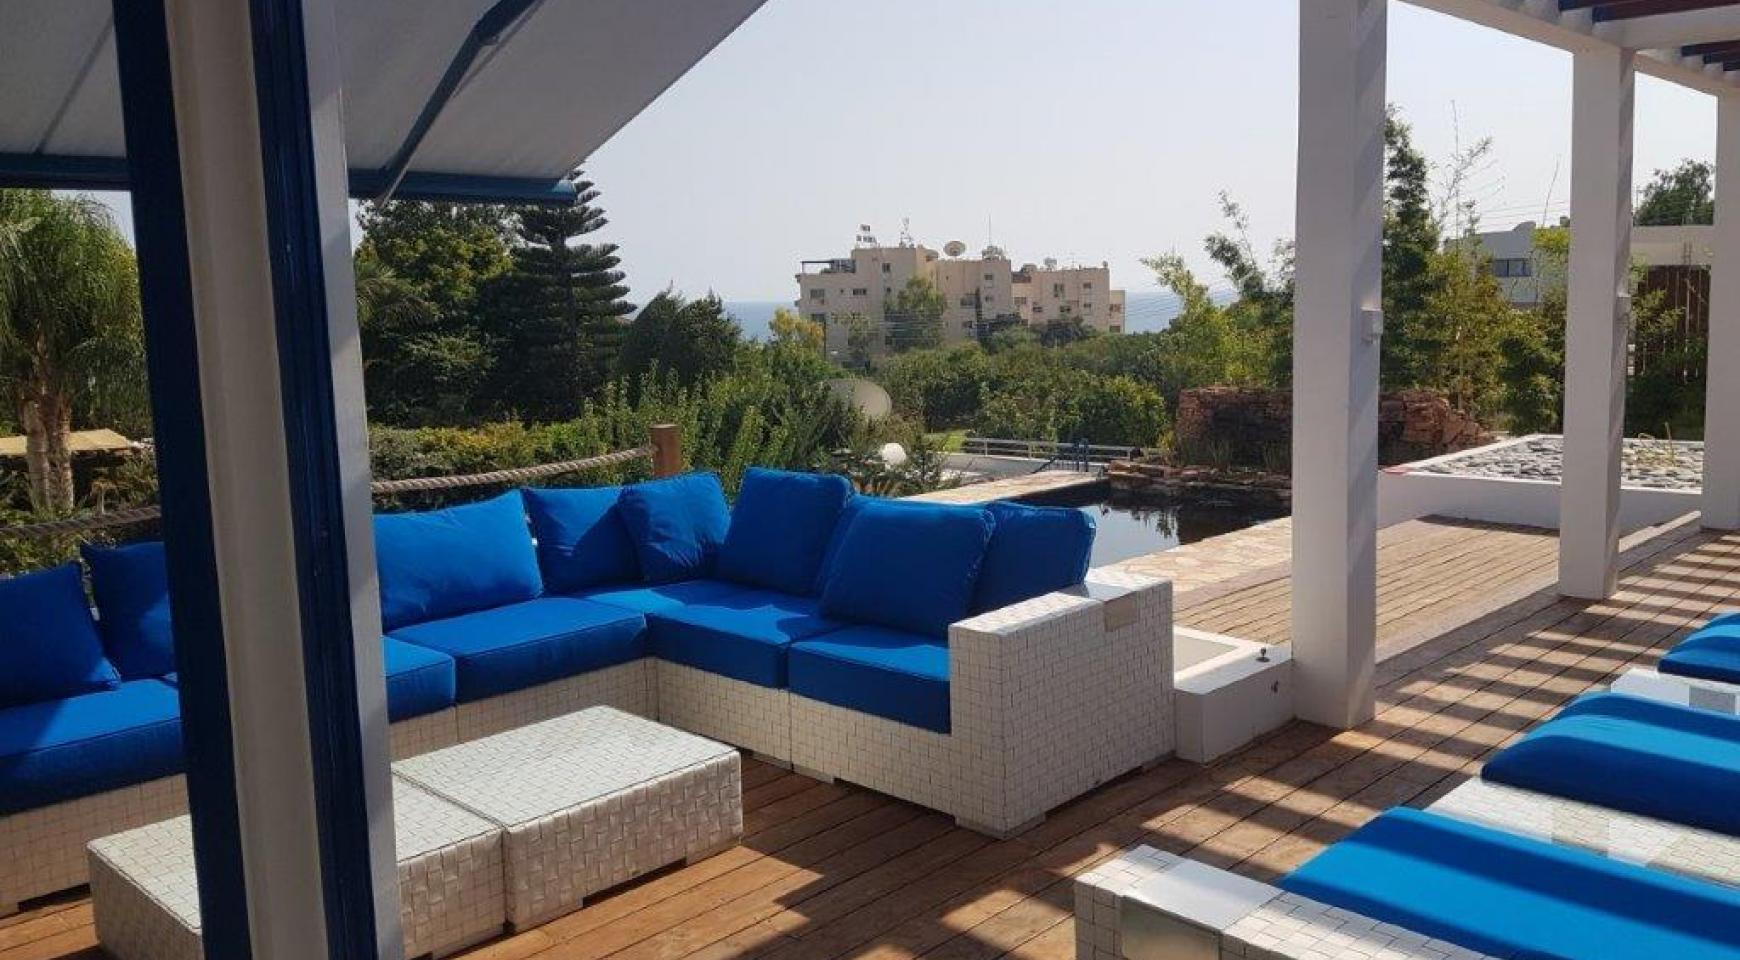 5 Bedroom Villa with Sea Views in Agios Tychonas Area - 5